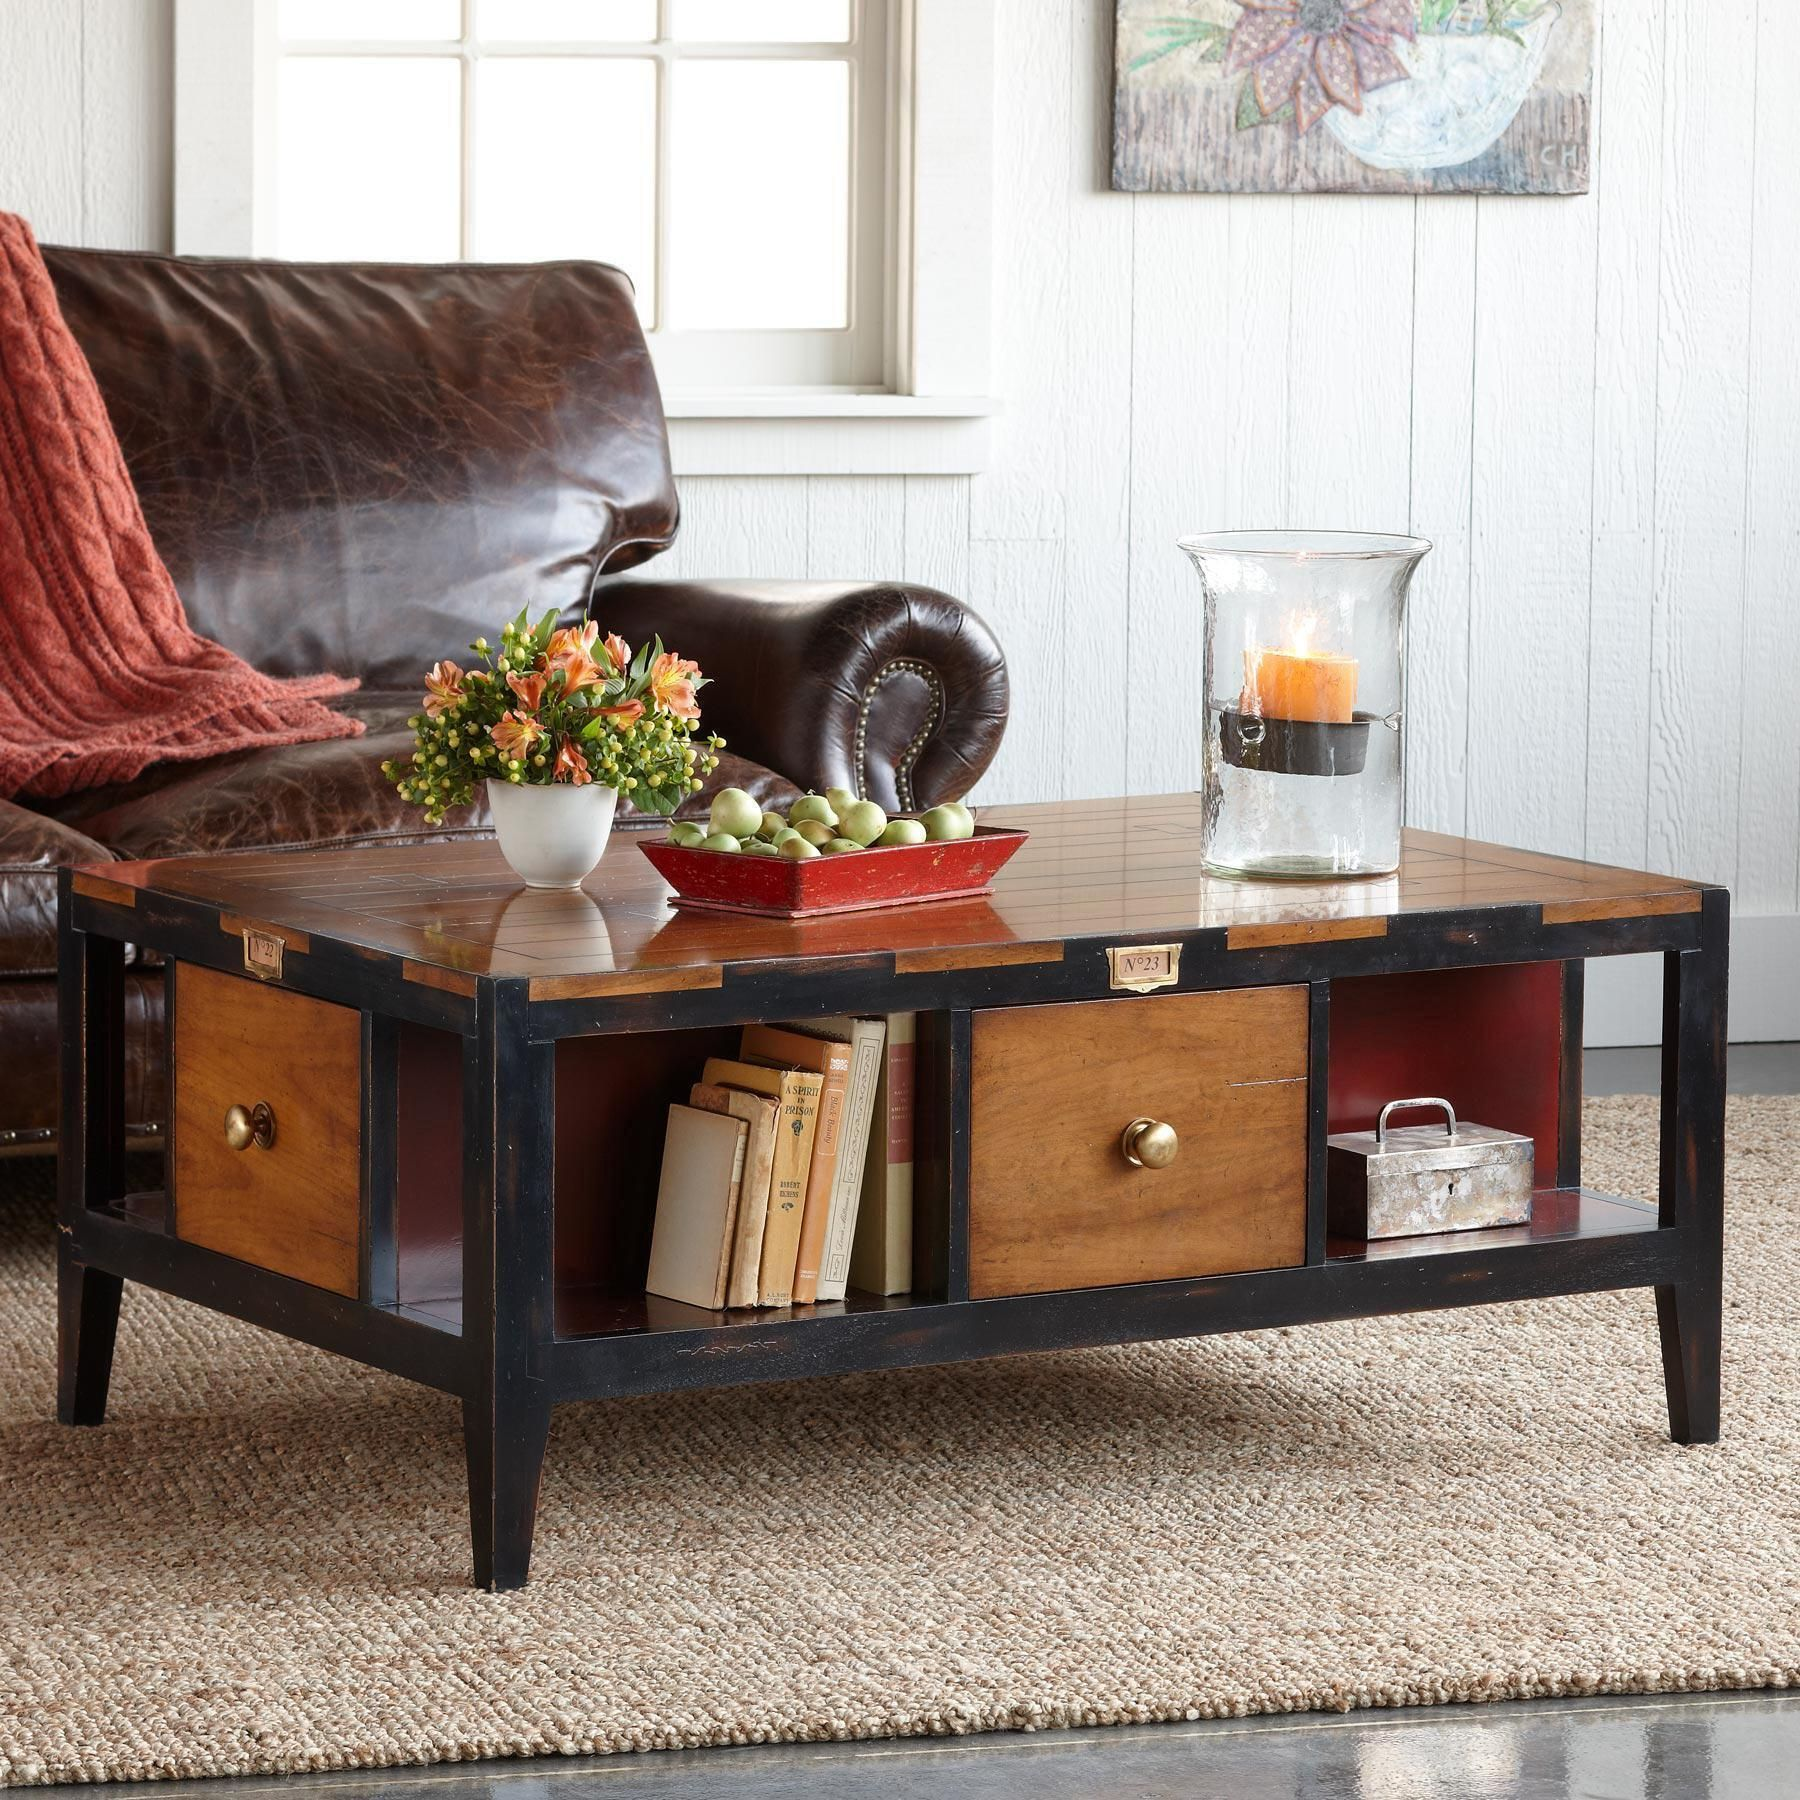 Ordinaire DRAPER COFFEE TABLE    French Furniture Designer Felix Monge Envisions A  Cosmopolitan Coffee Table That Offers Sleek Styleu2014and Storage, In Four  Spacious ...